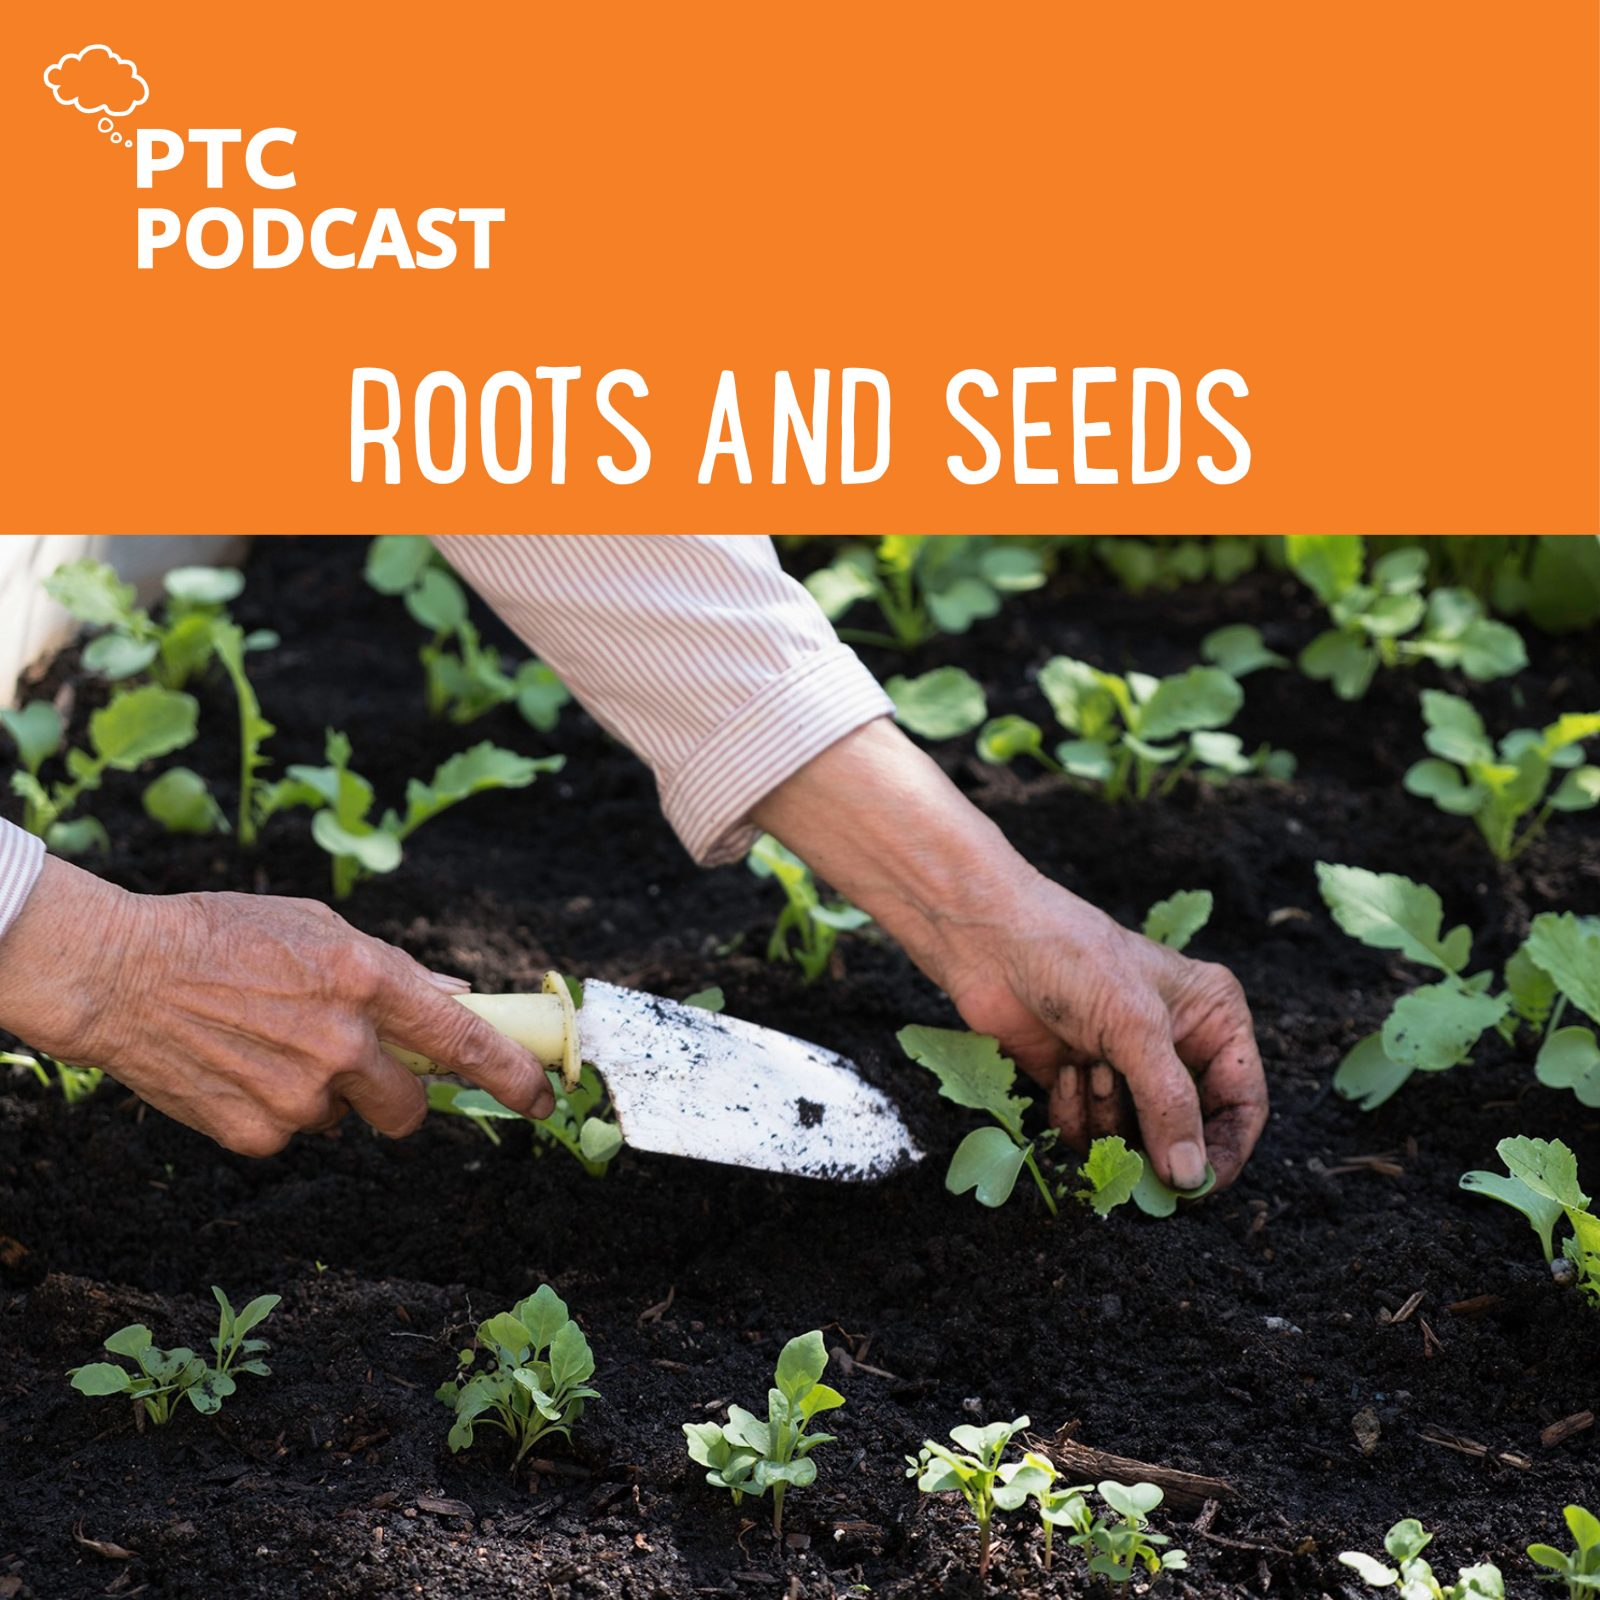 Roots and Seeds Podcast image of woman's hands tending garden